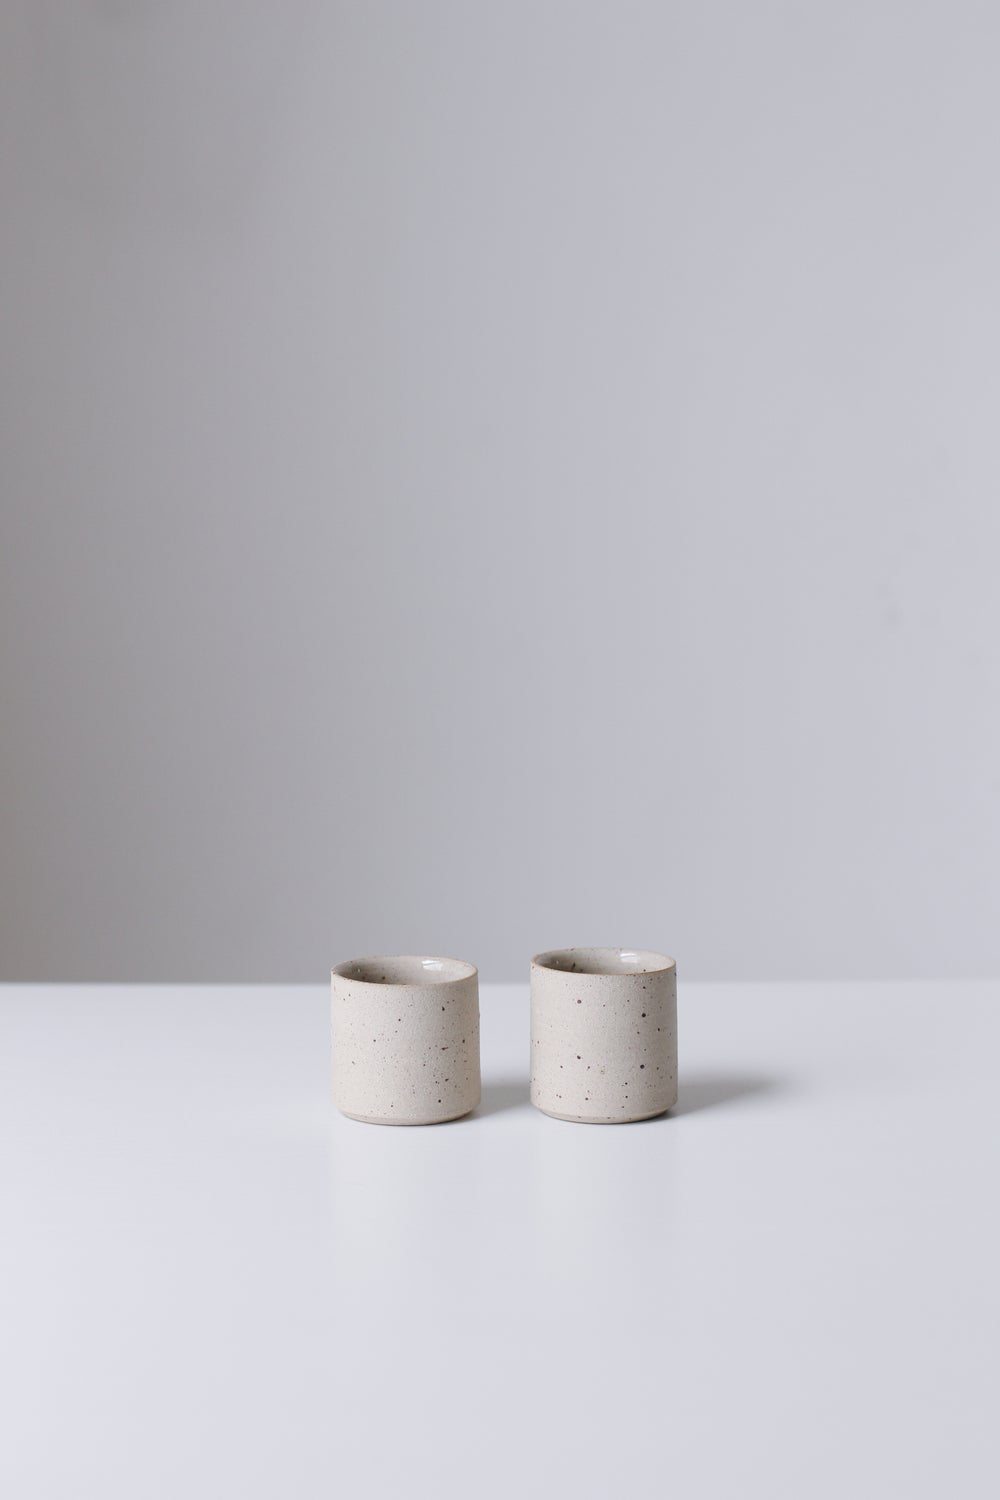 Image of Pair of Flecked Espresso Cups